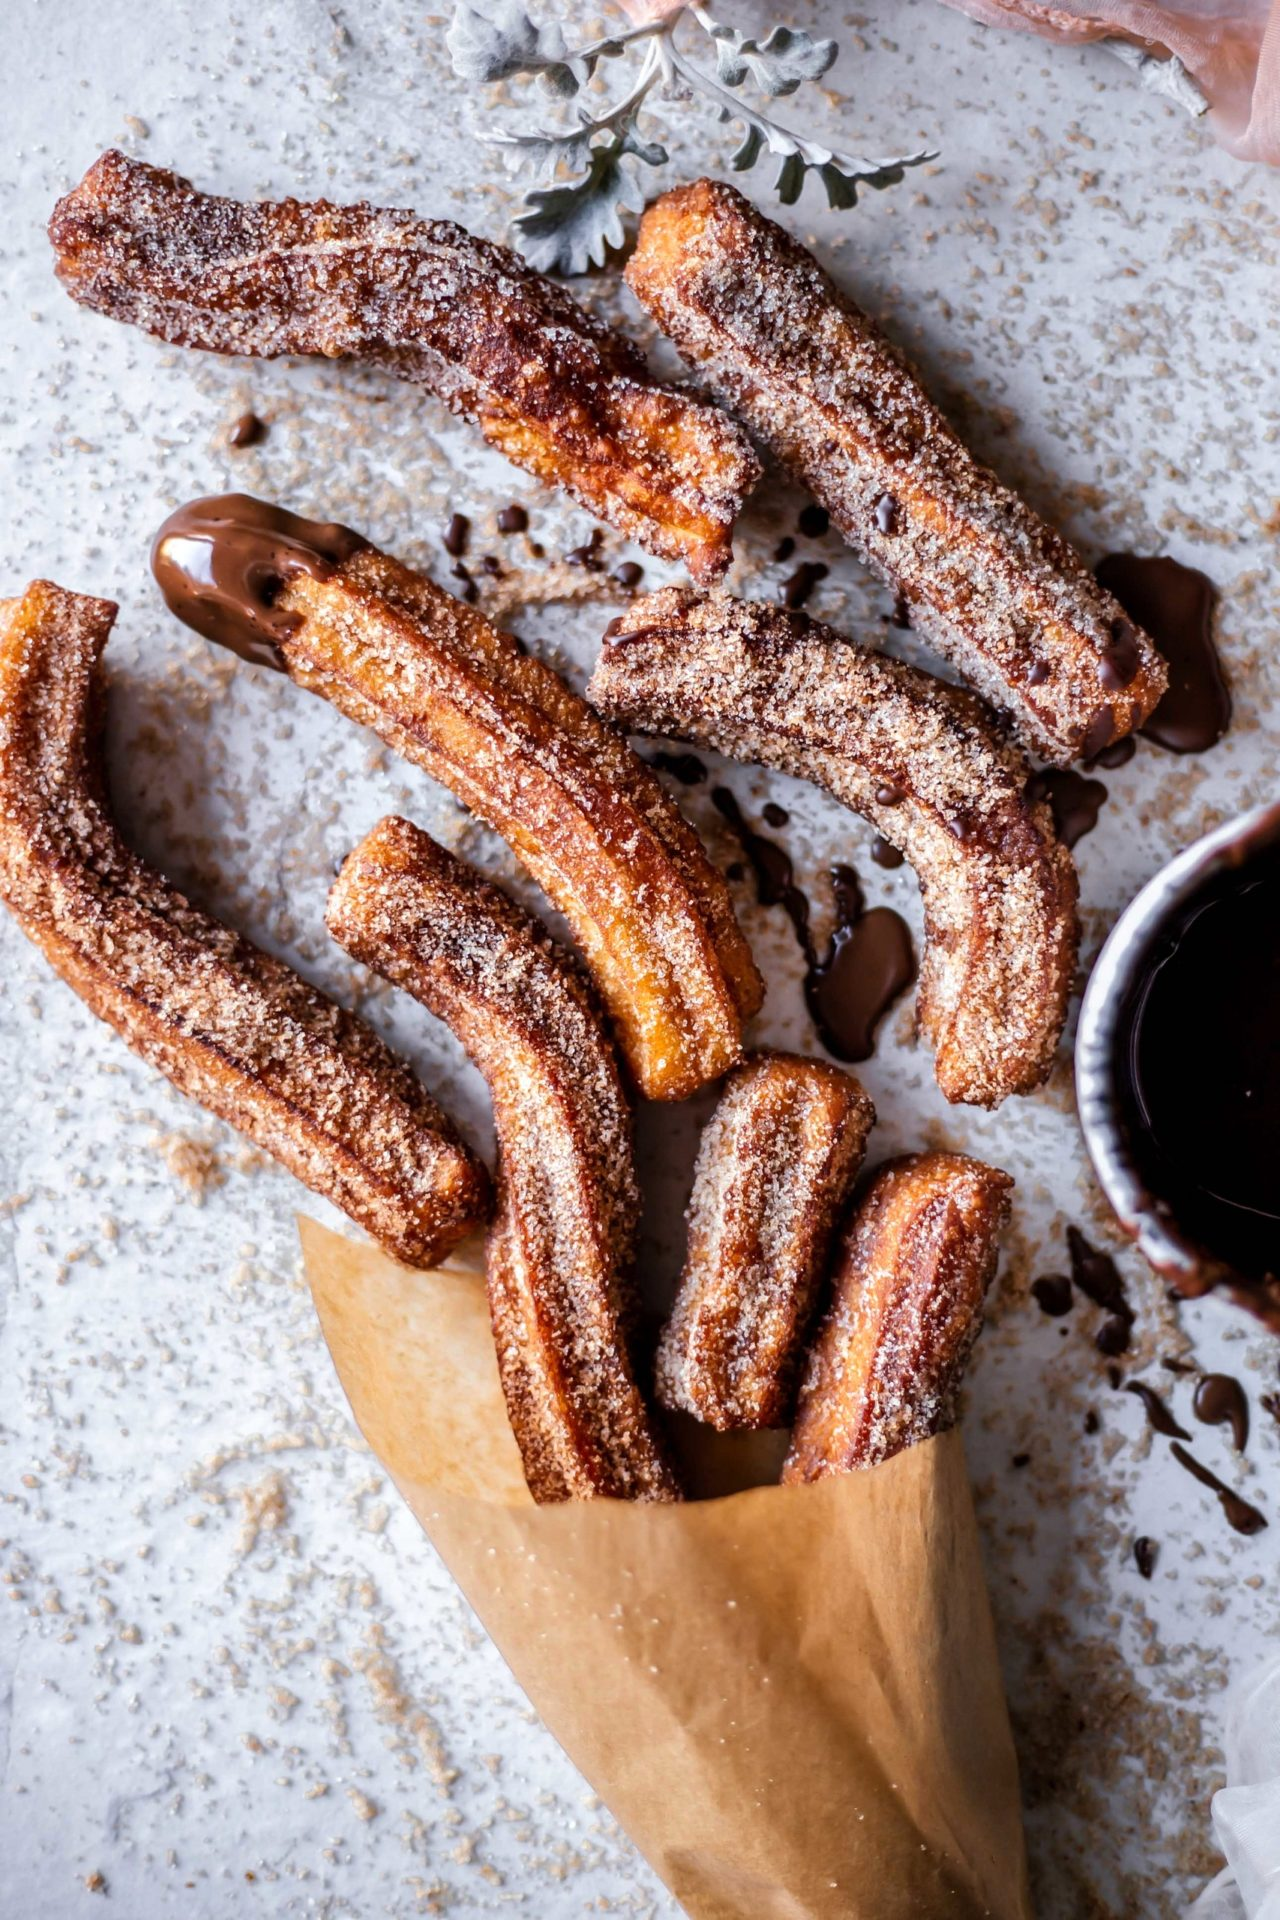 These gluten-free churros are light, airy, tender on the inside and crispy on the outside, perfectly sweetened, and just so delicious!